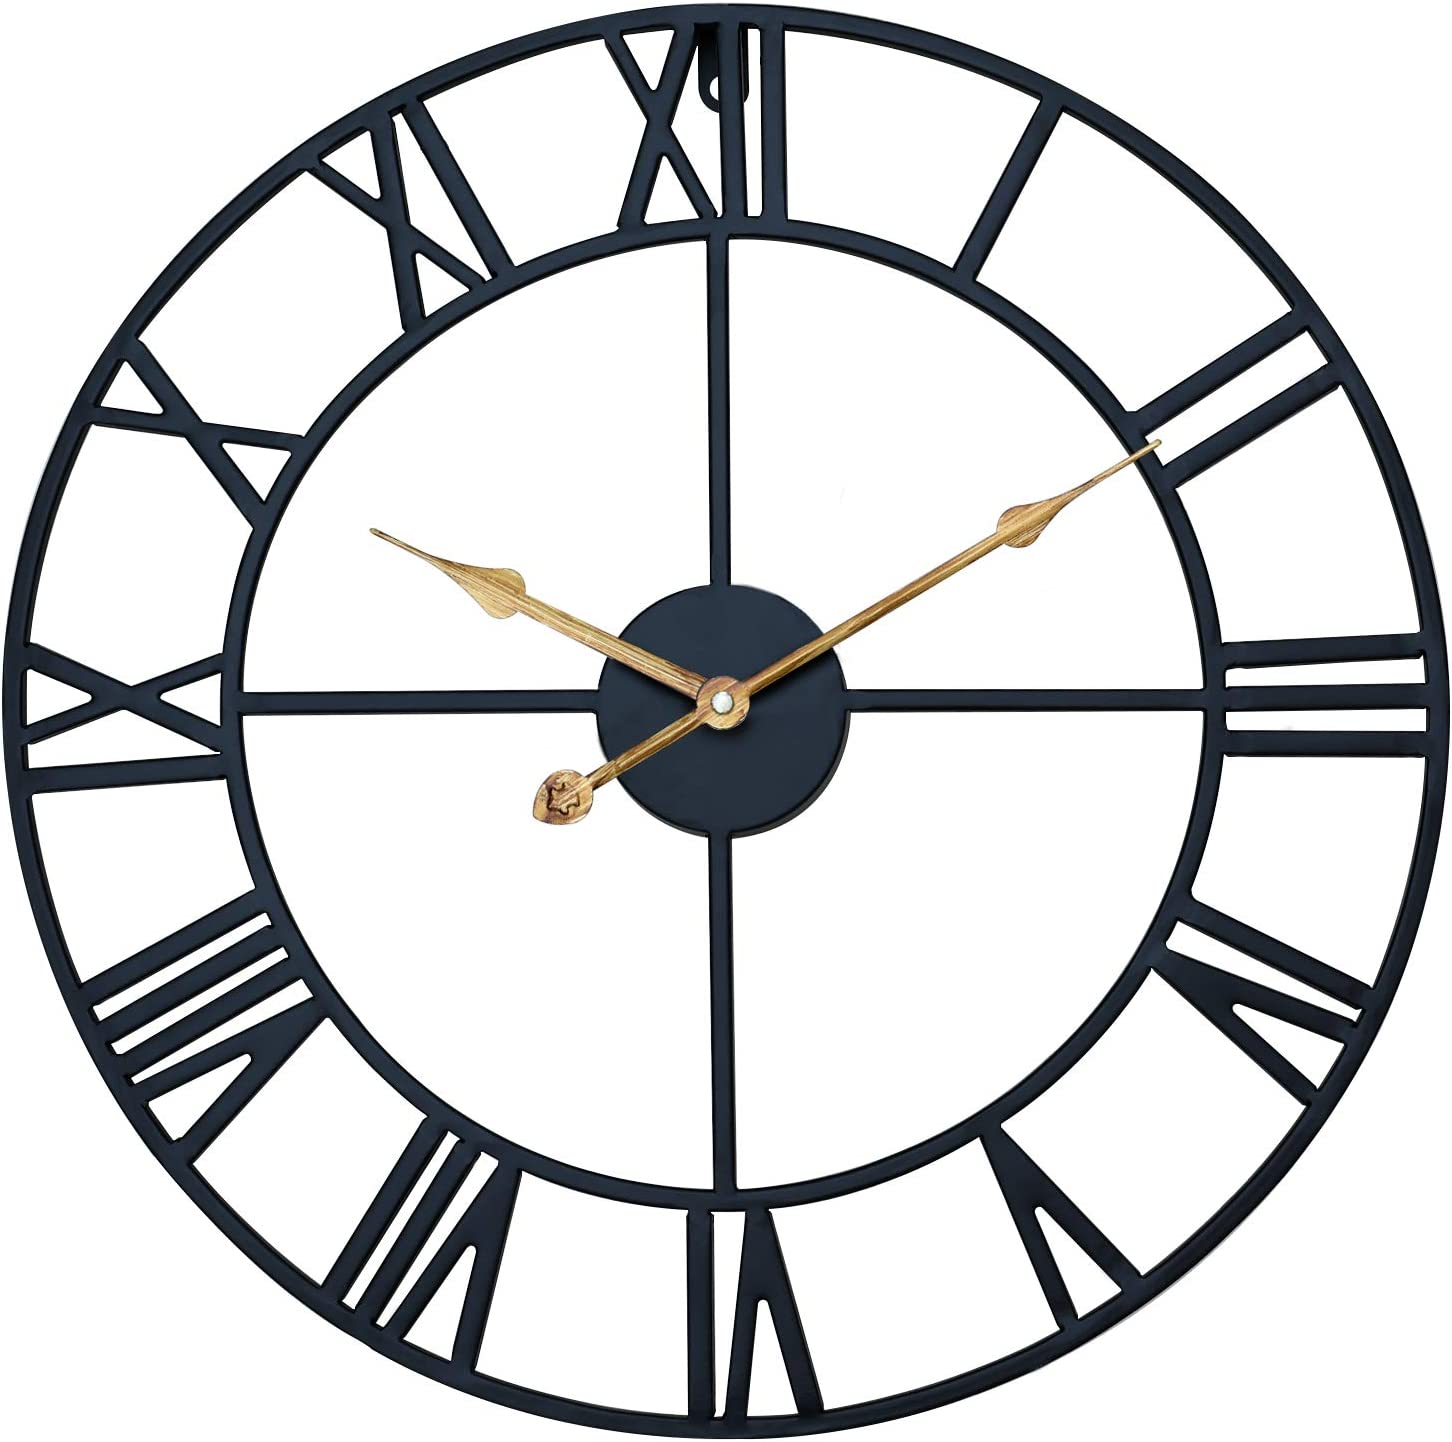 Shinedecor Decor Wall Clock 18 Inches, Quiet Large Metal Decorative Wall Clock with Roman Numerals for Any Room at Home, Office & School, Round, Battery Operated, Classic Matte Black and Antique Brass